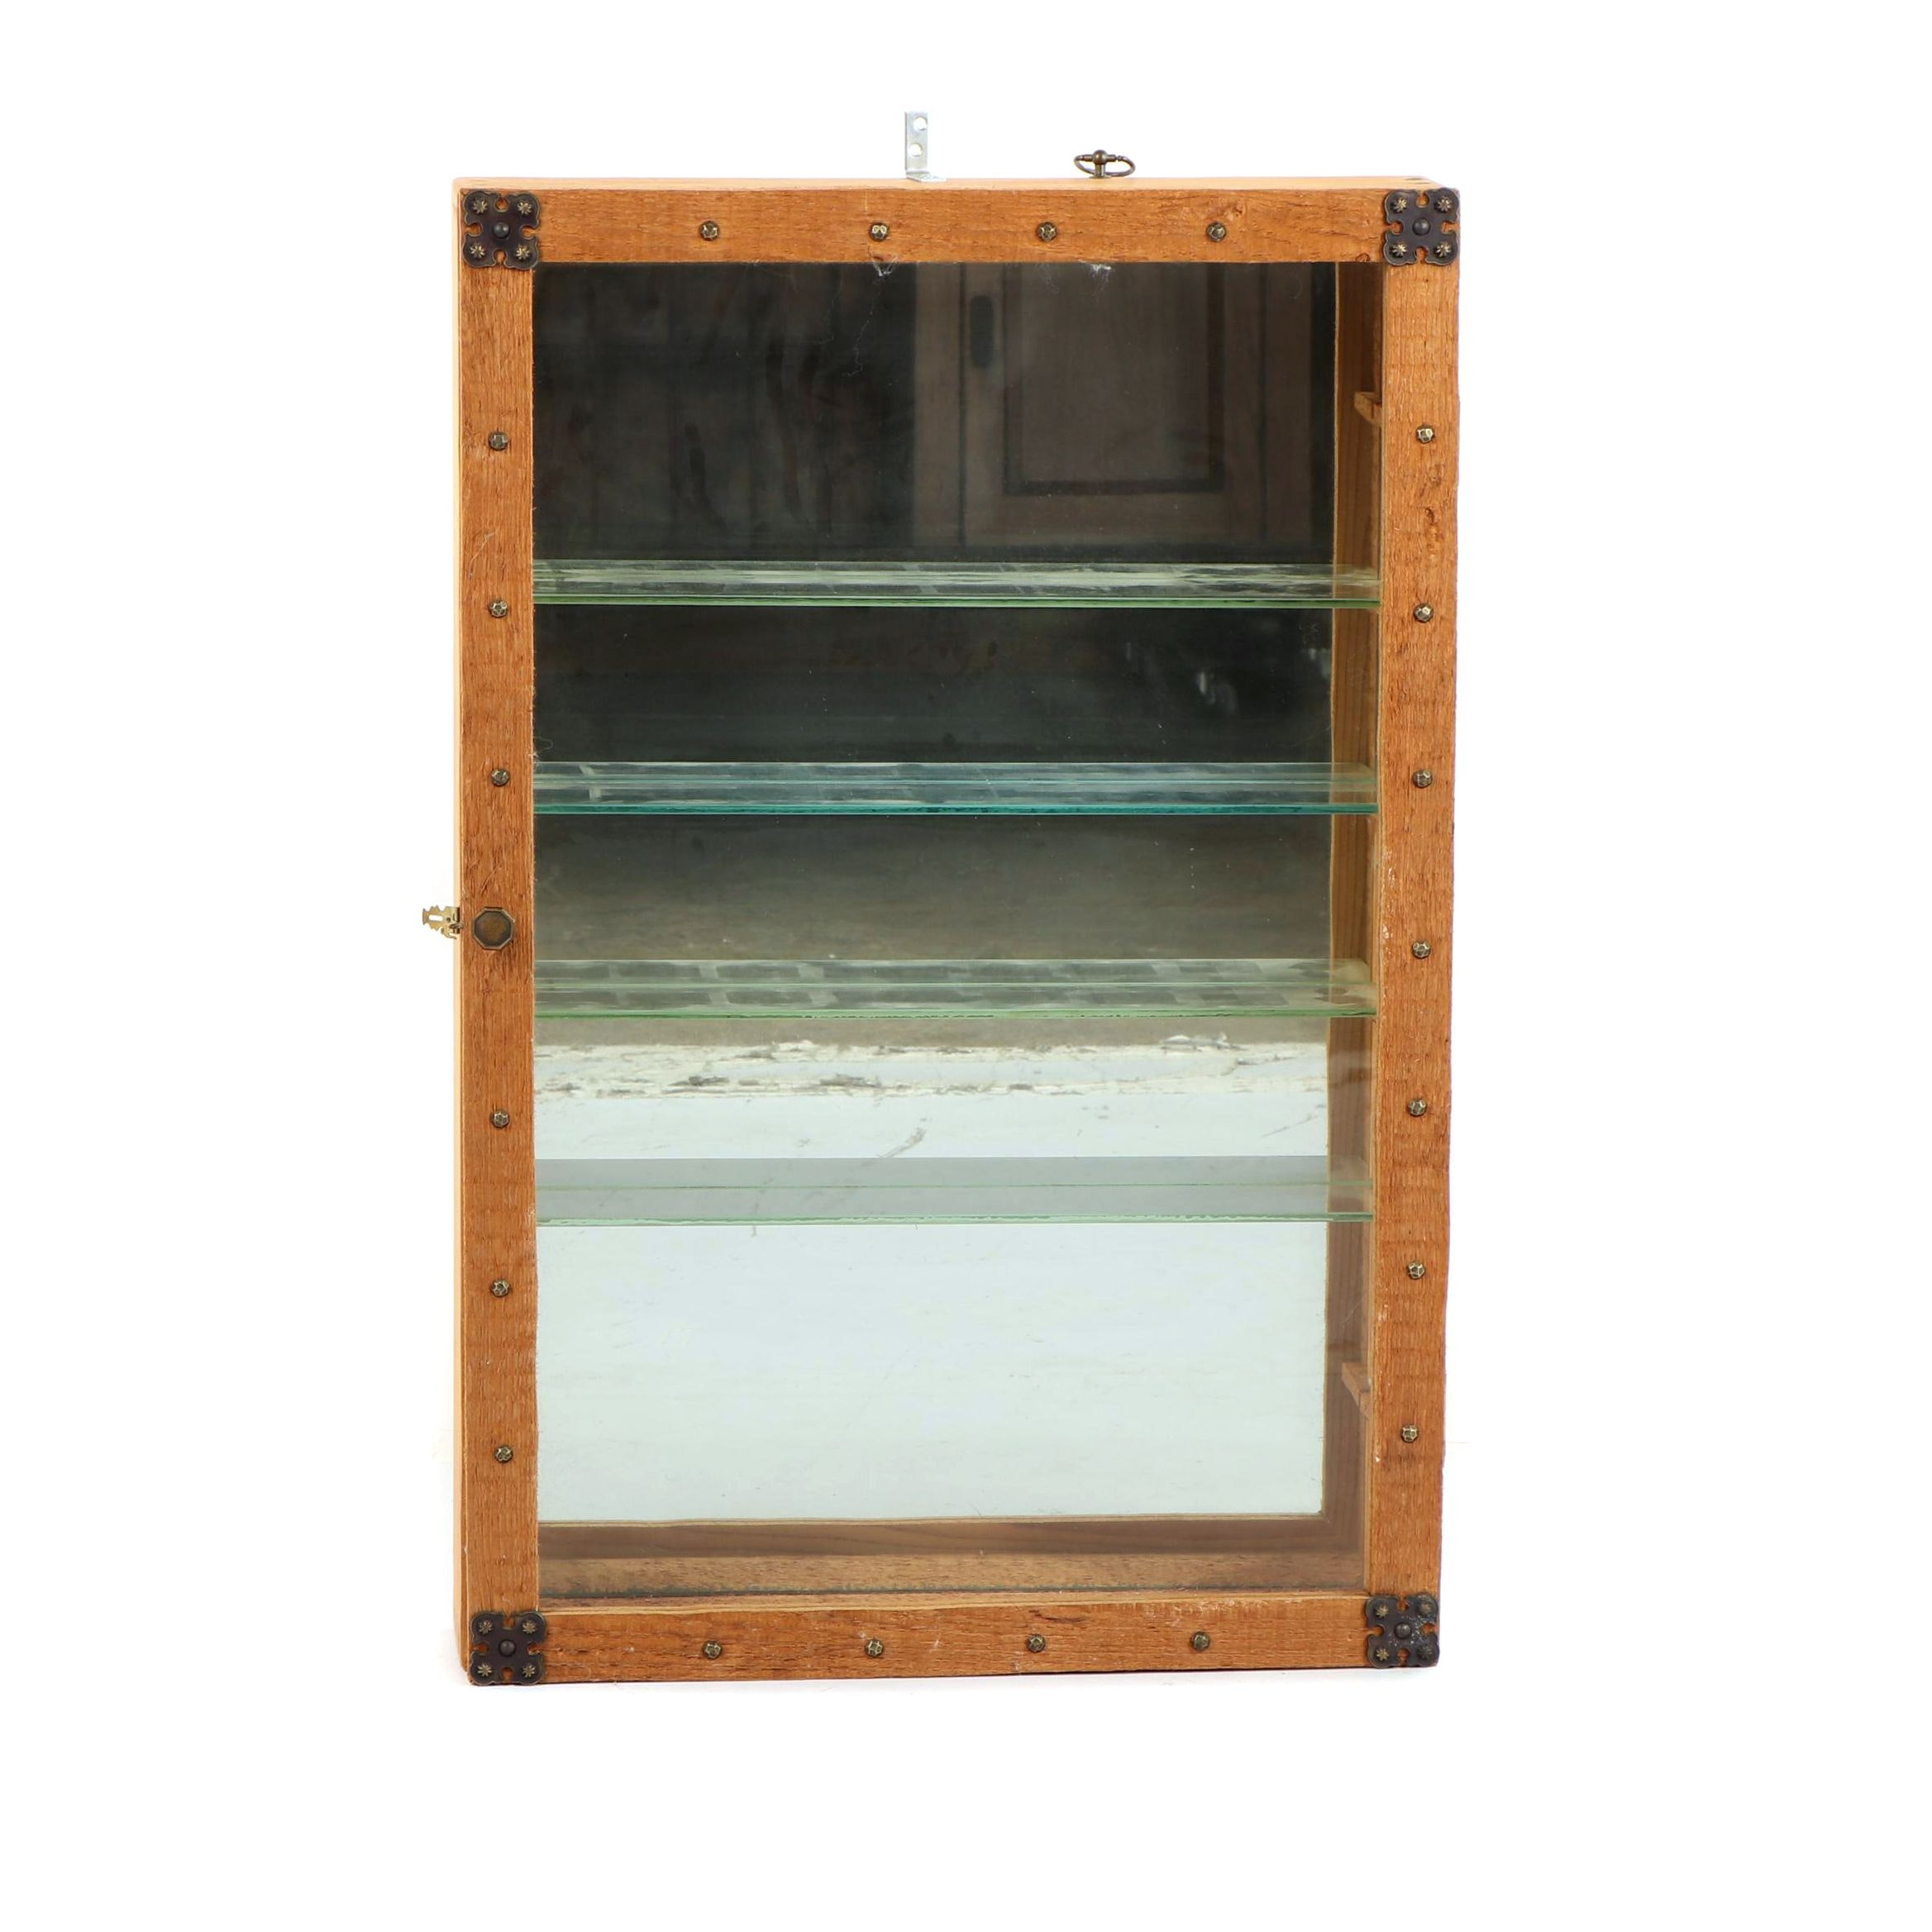 Pine Wall Mount Display Cabinet with Mirrored Back, Mid 20th Century